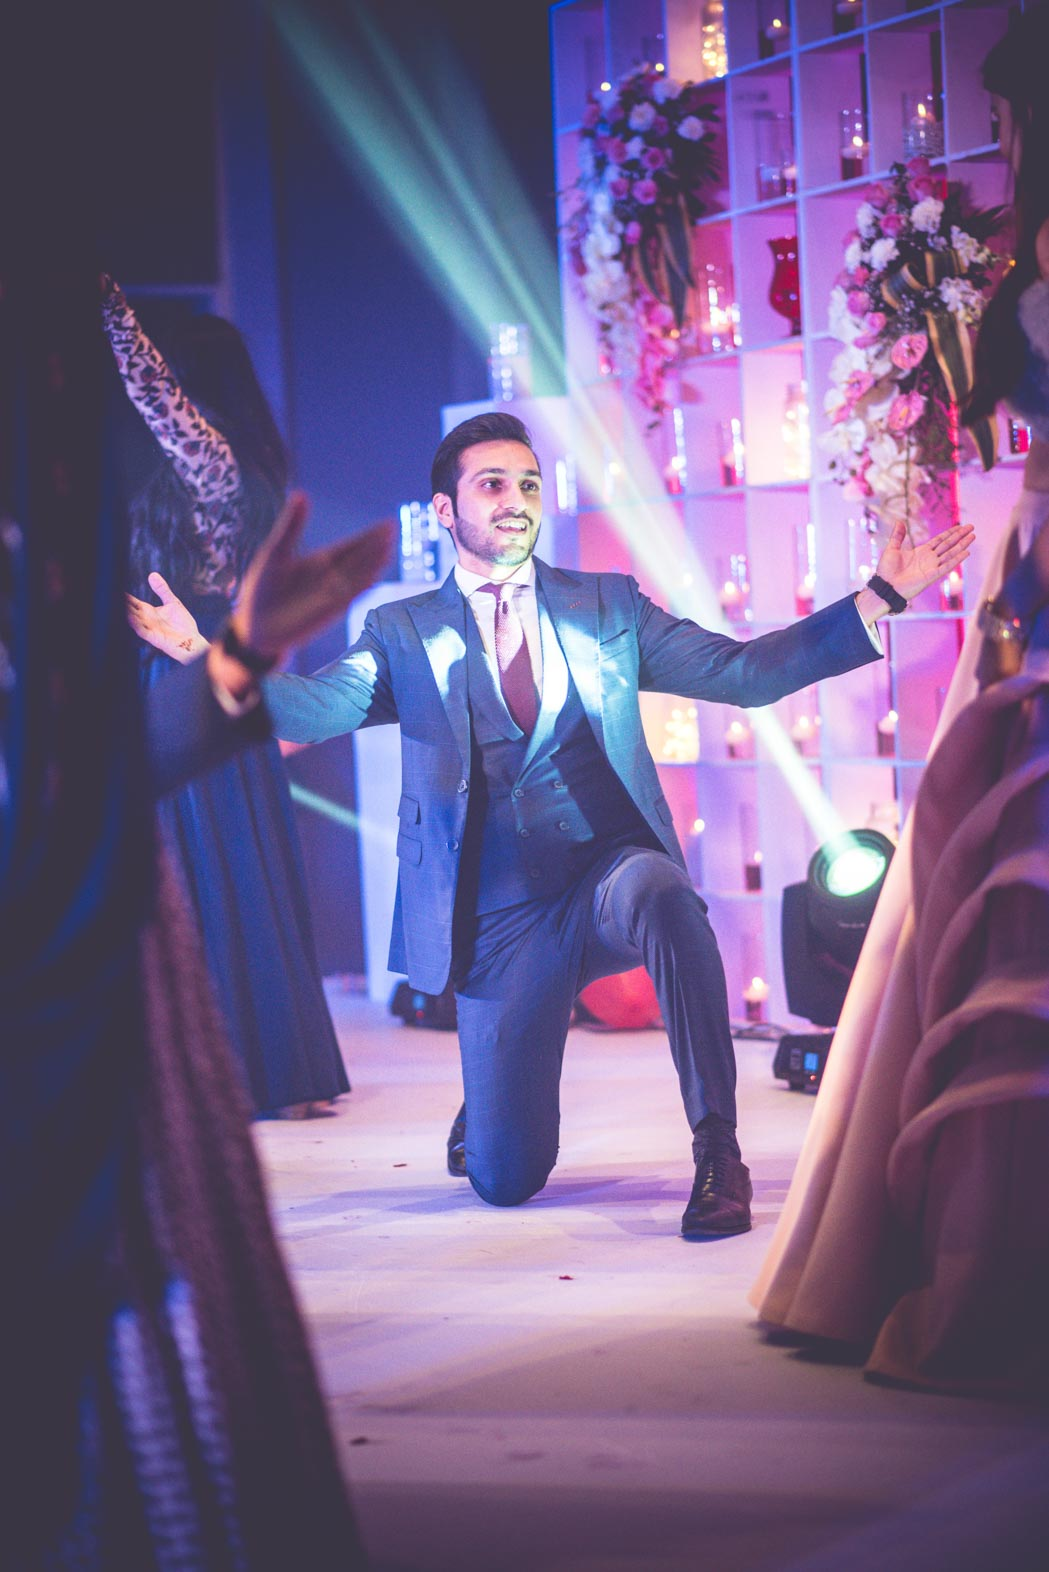 StRegis-Palladium-Mumbai-Candid-Wedding-Photography-69